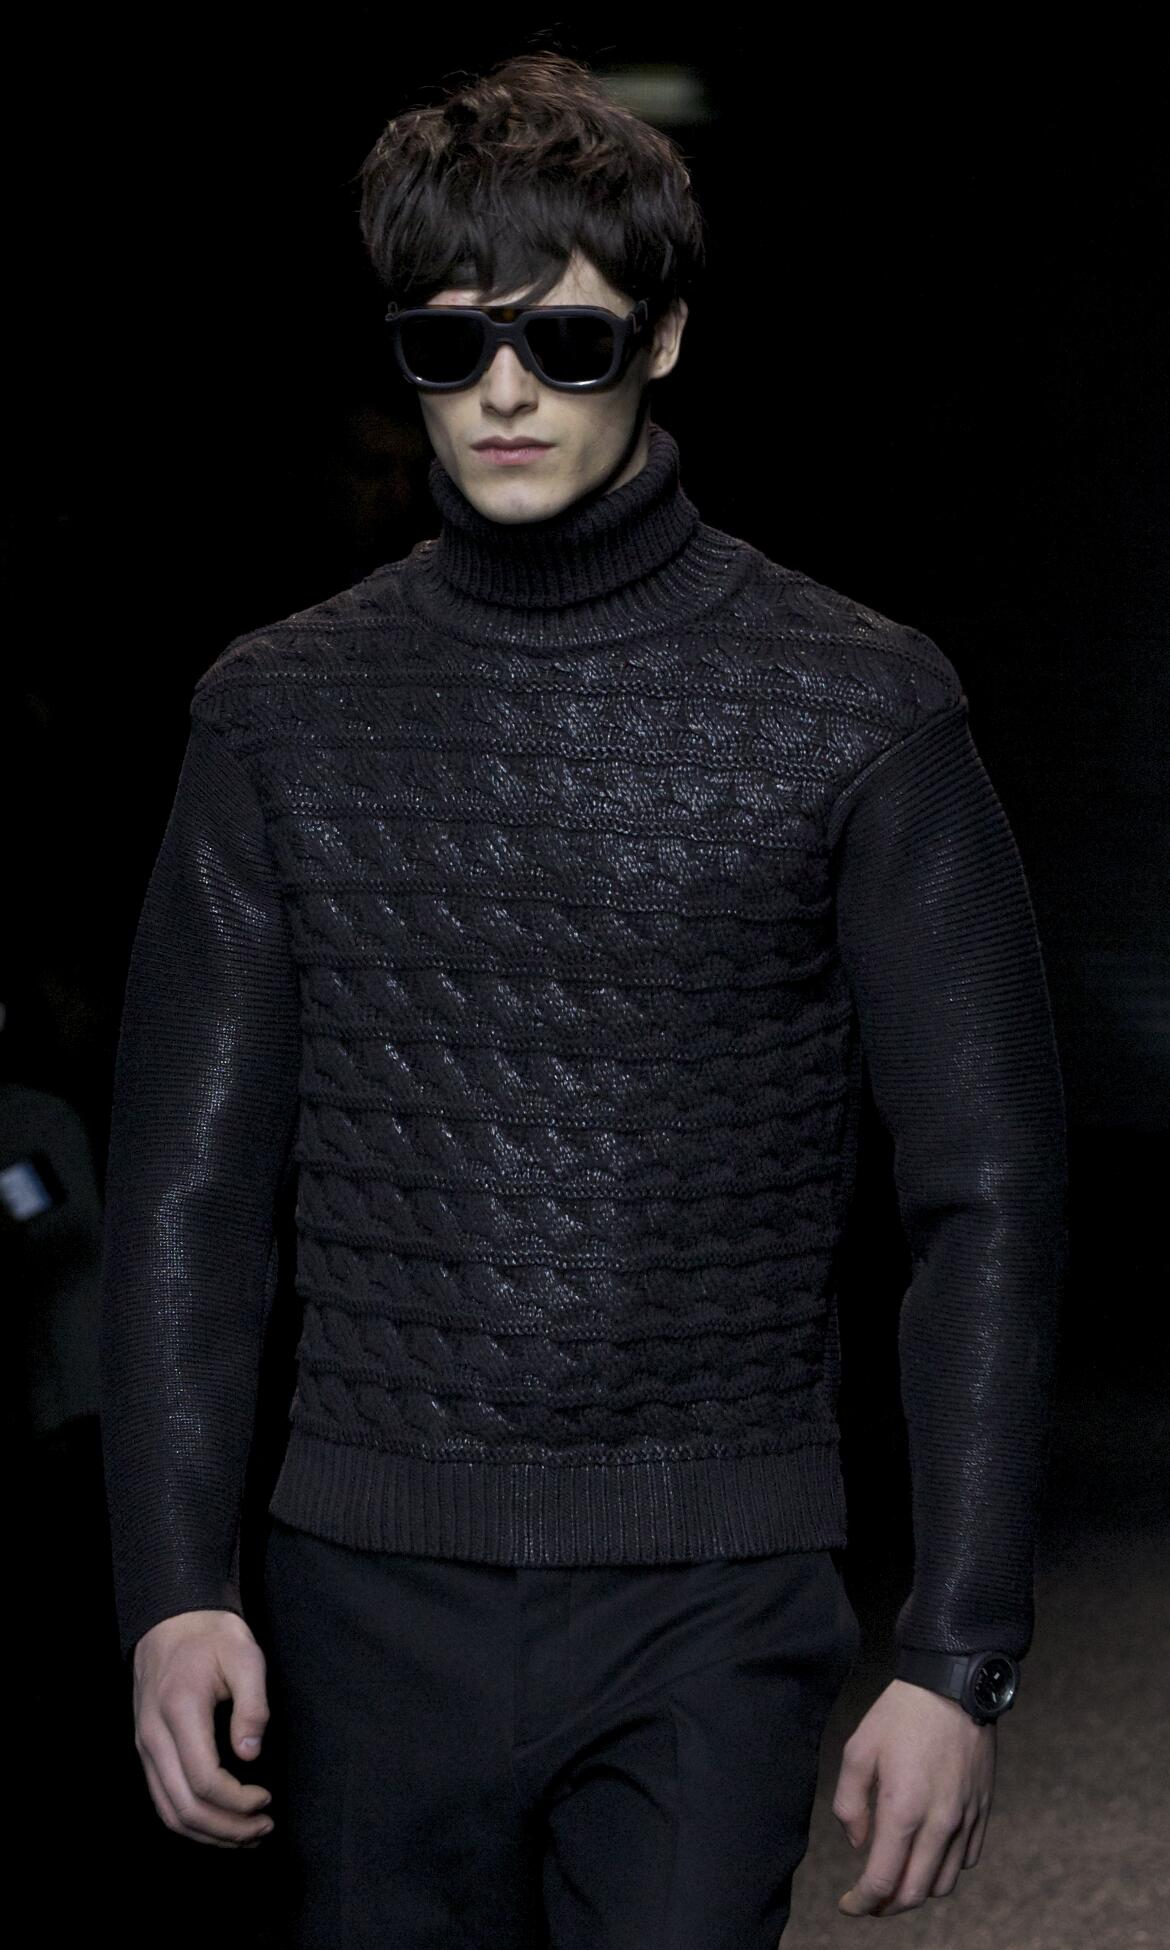 Catwalk Salvatore Ferragamo Fashion Show Winter 2013 Menswear